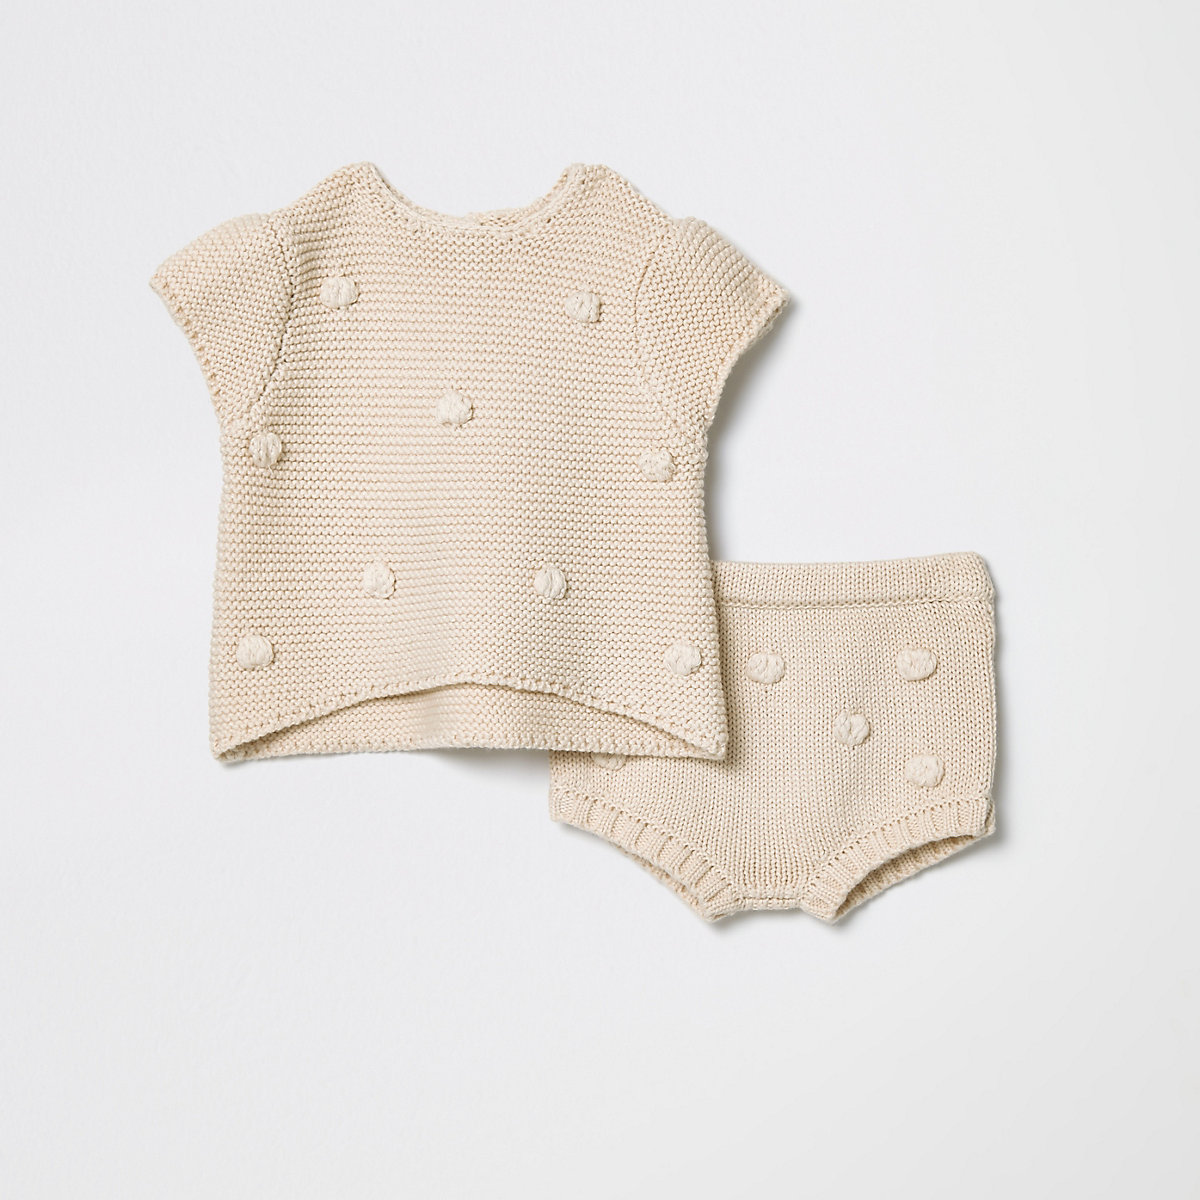 Baby cream knitted bobble bloomed outfit